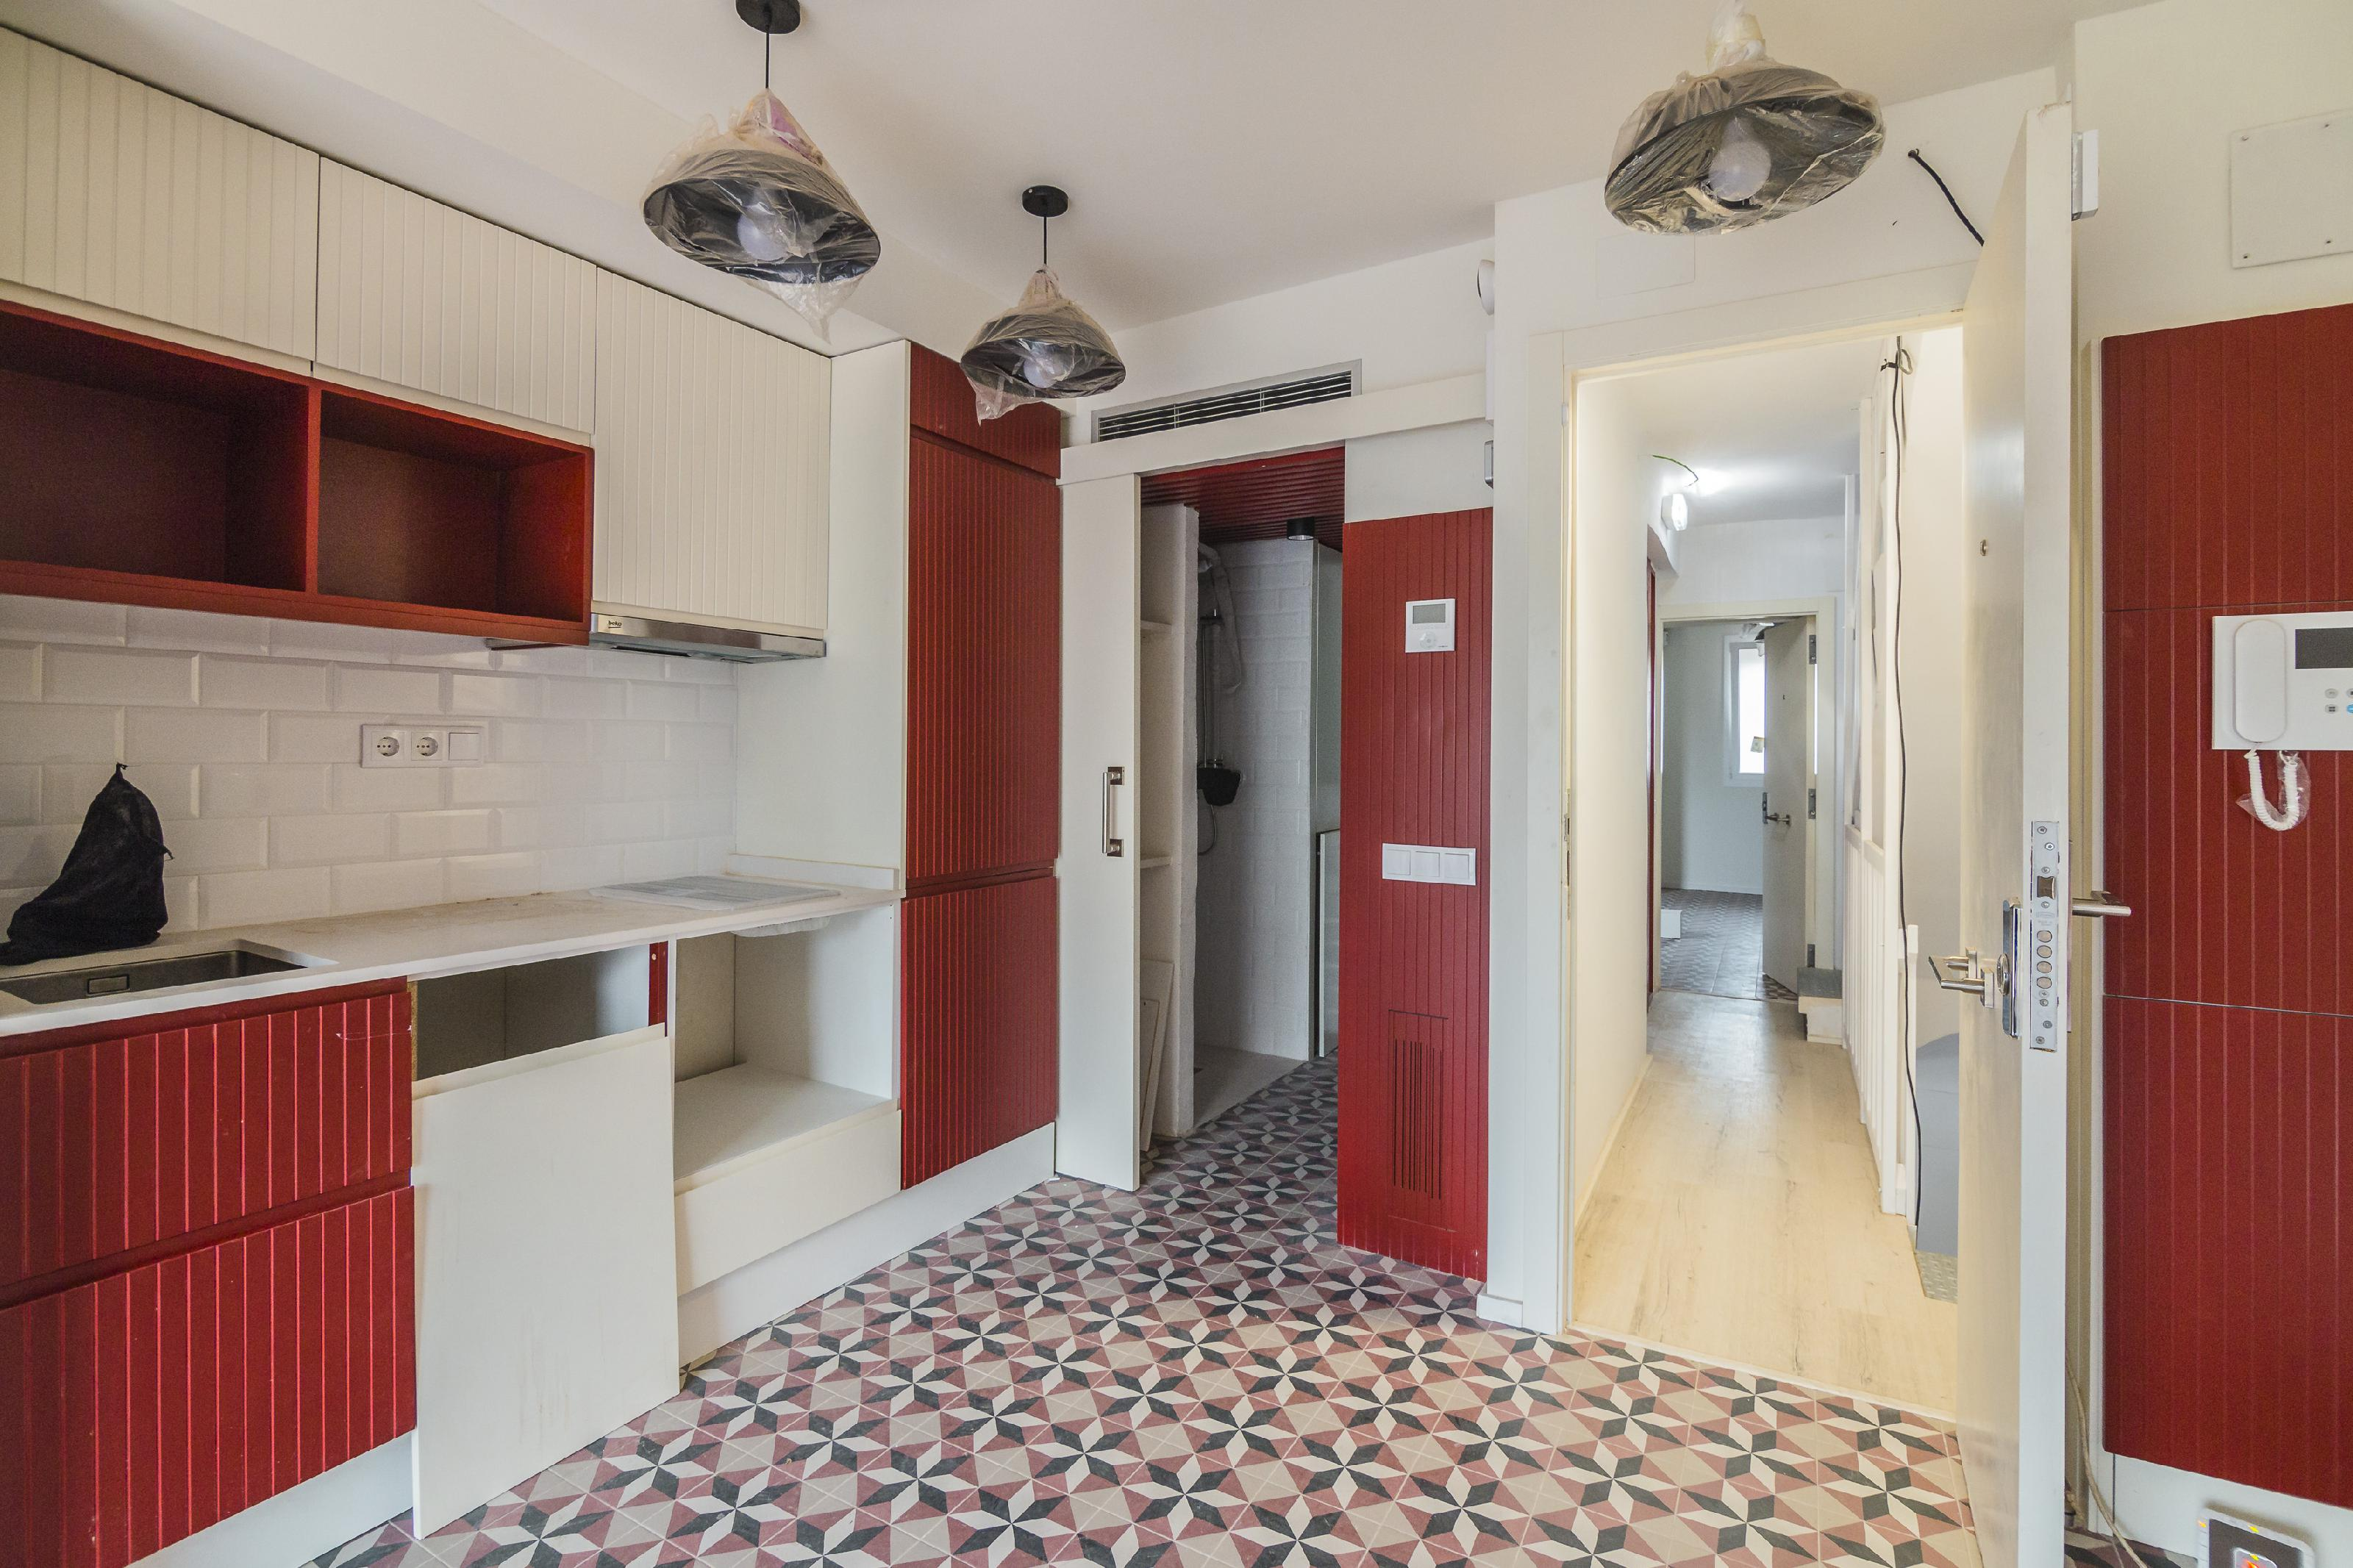 237520 Flat for sale in Ciutat Vella, St. Pere St. Caterina and La Ribera 17